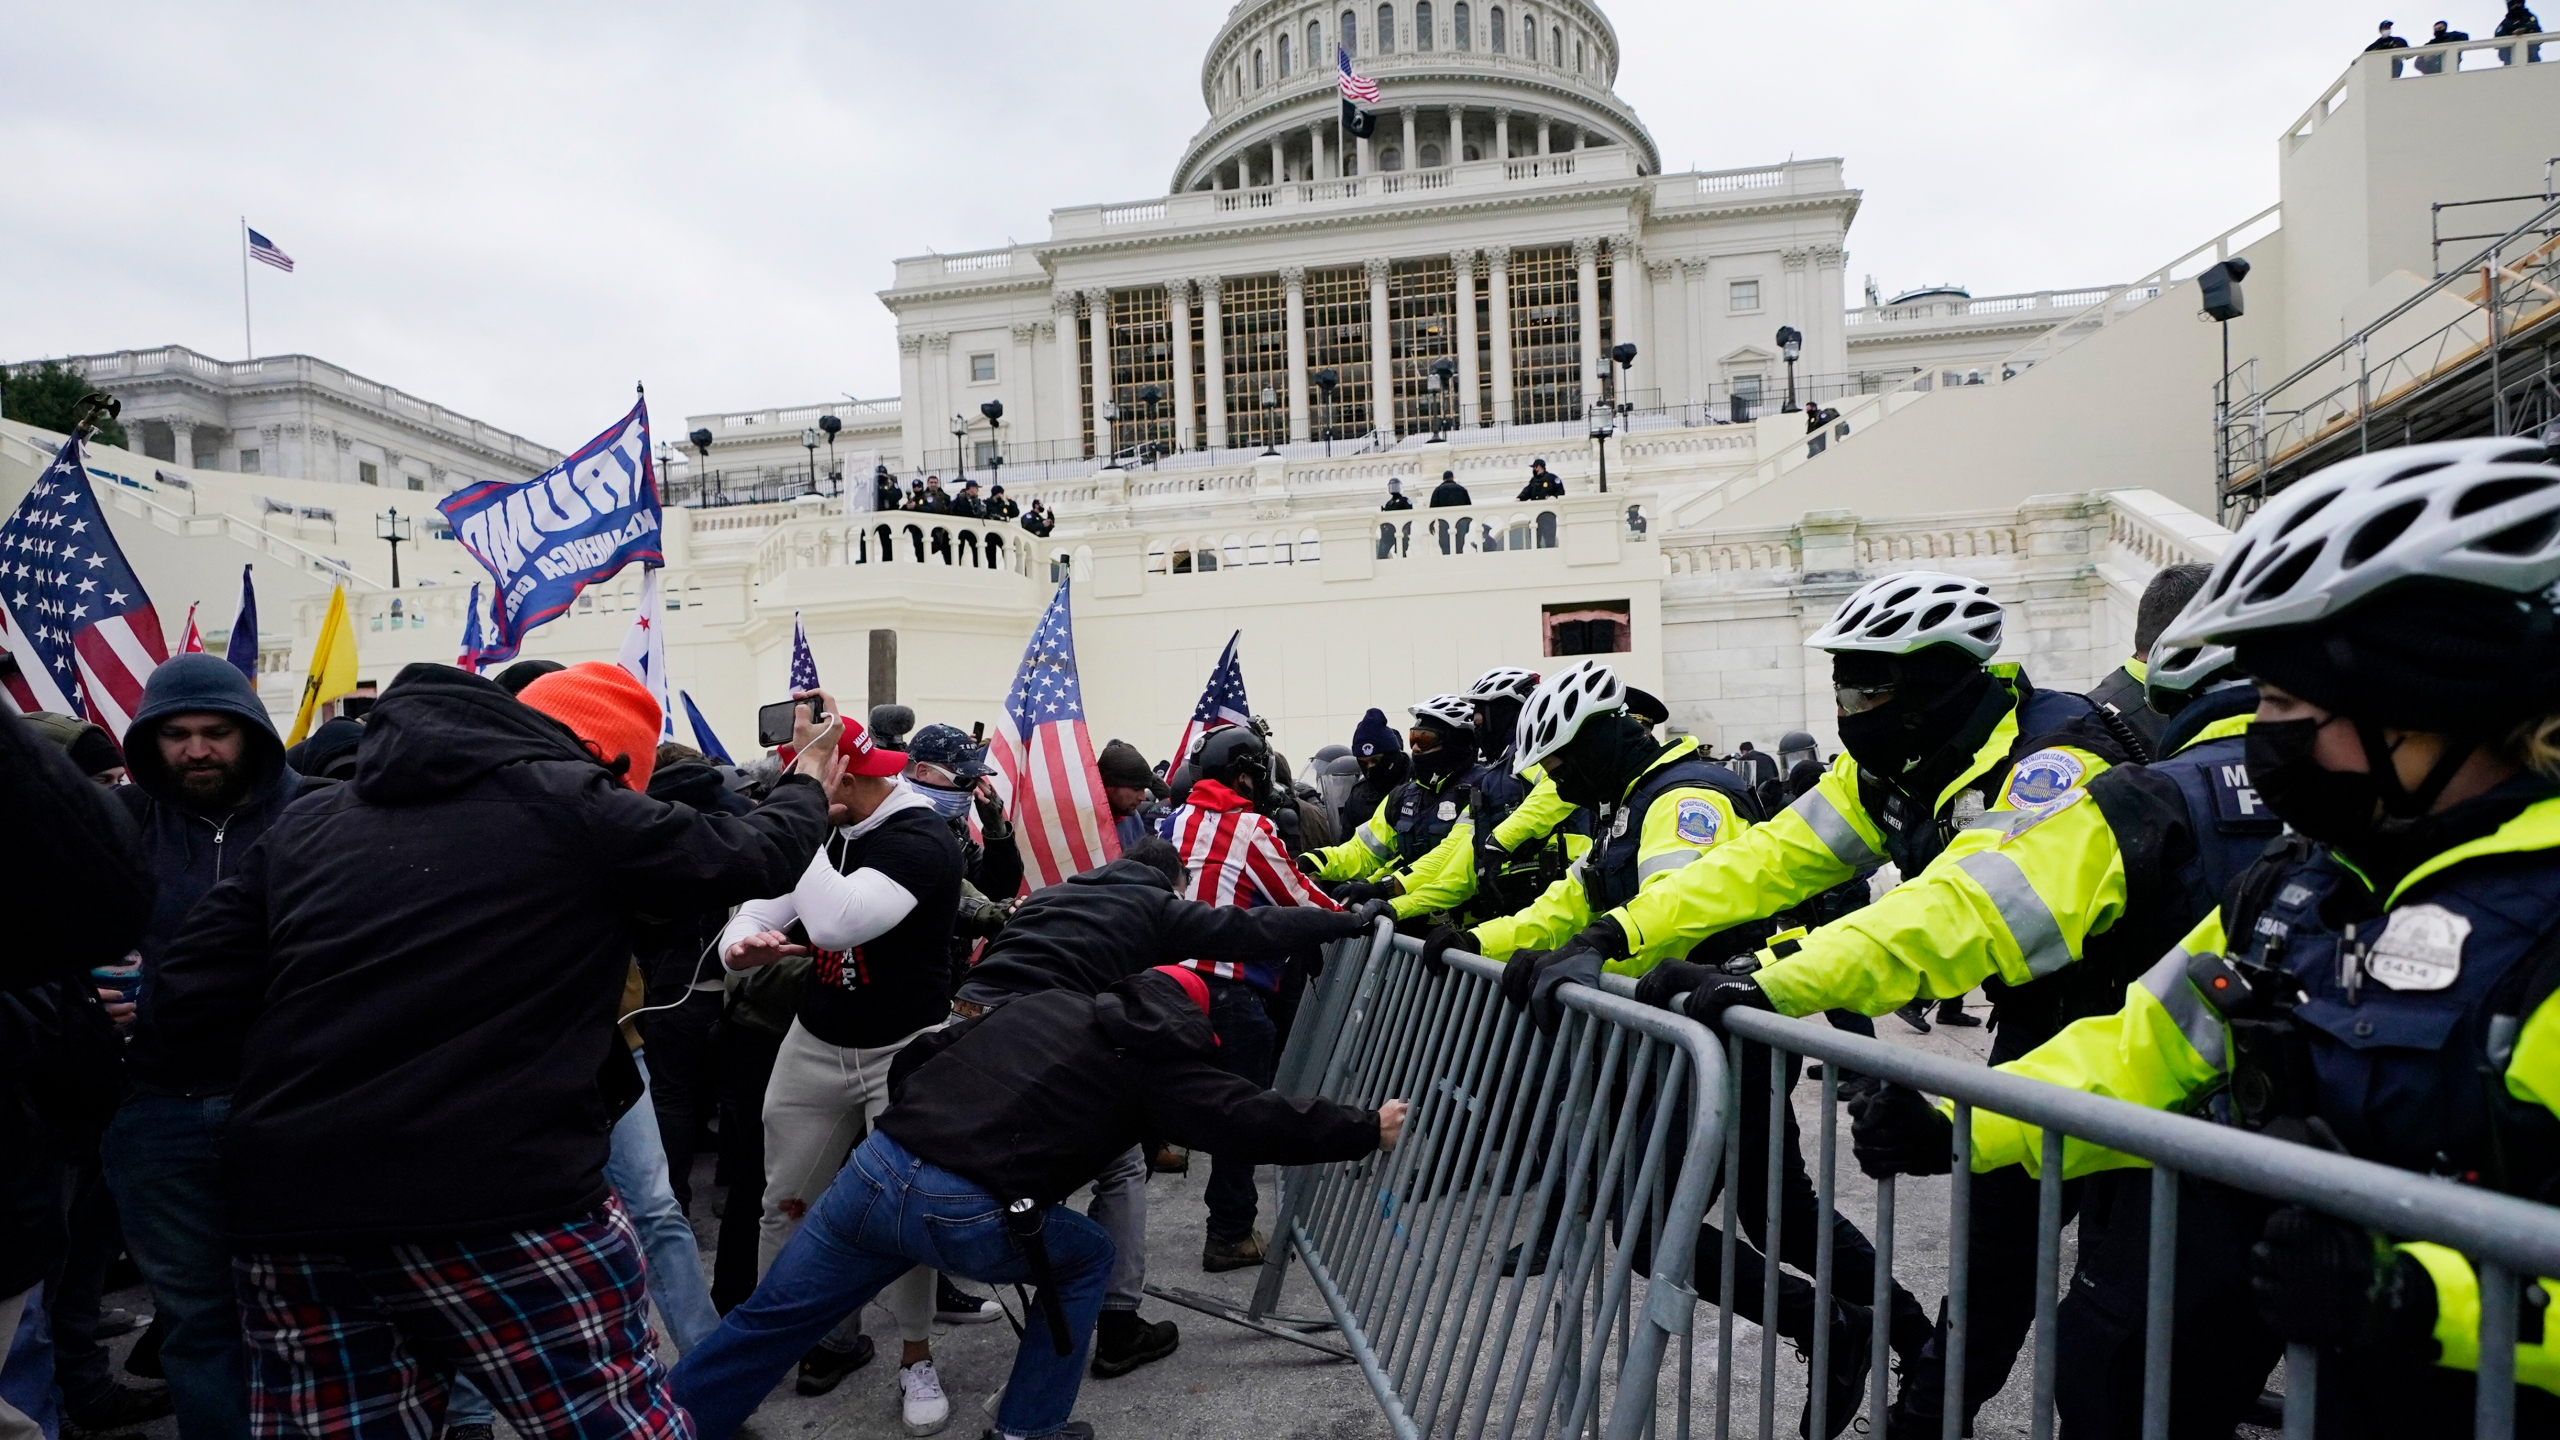 In this Jan. 6, 2021 file photo, rioters try to break through a police barrier at the Capitol in Washington. (AP Photo/Julio Cortez, File)